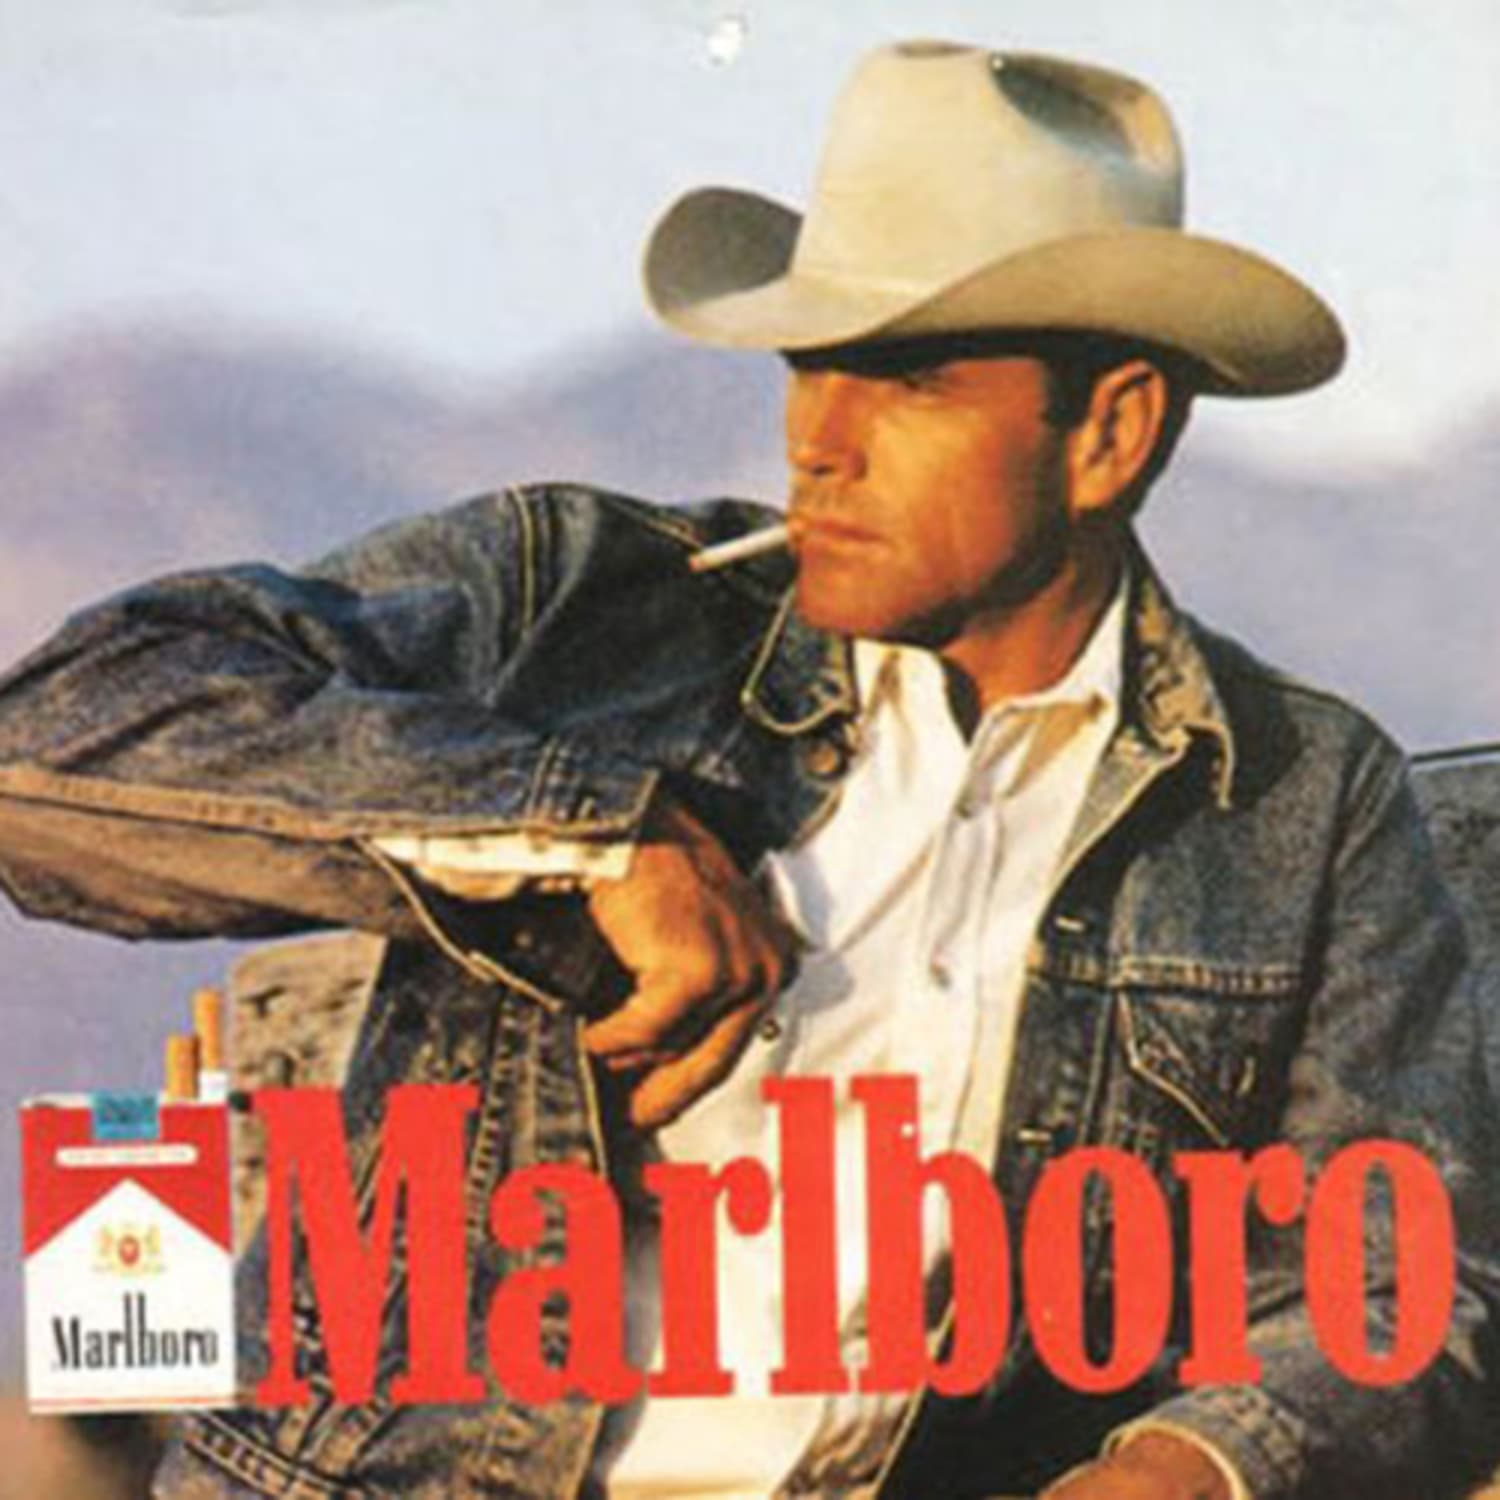 Man in cowboy hat smoking a cigarette in classic American ad for Marlboro